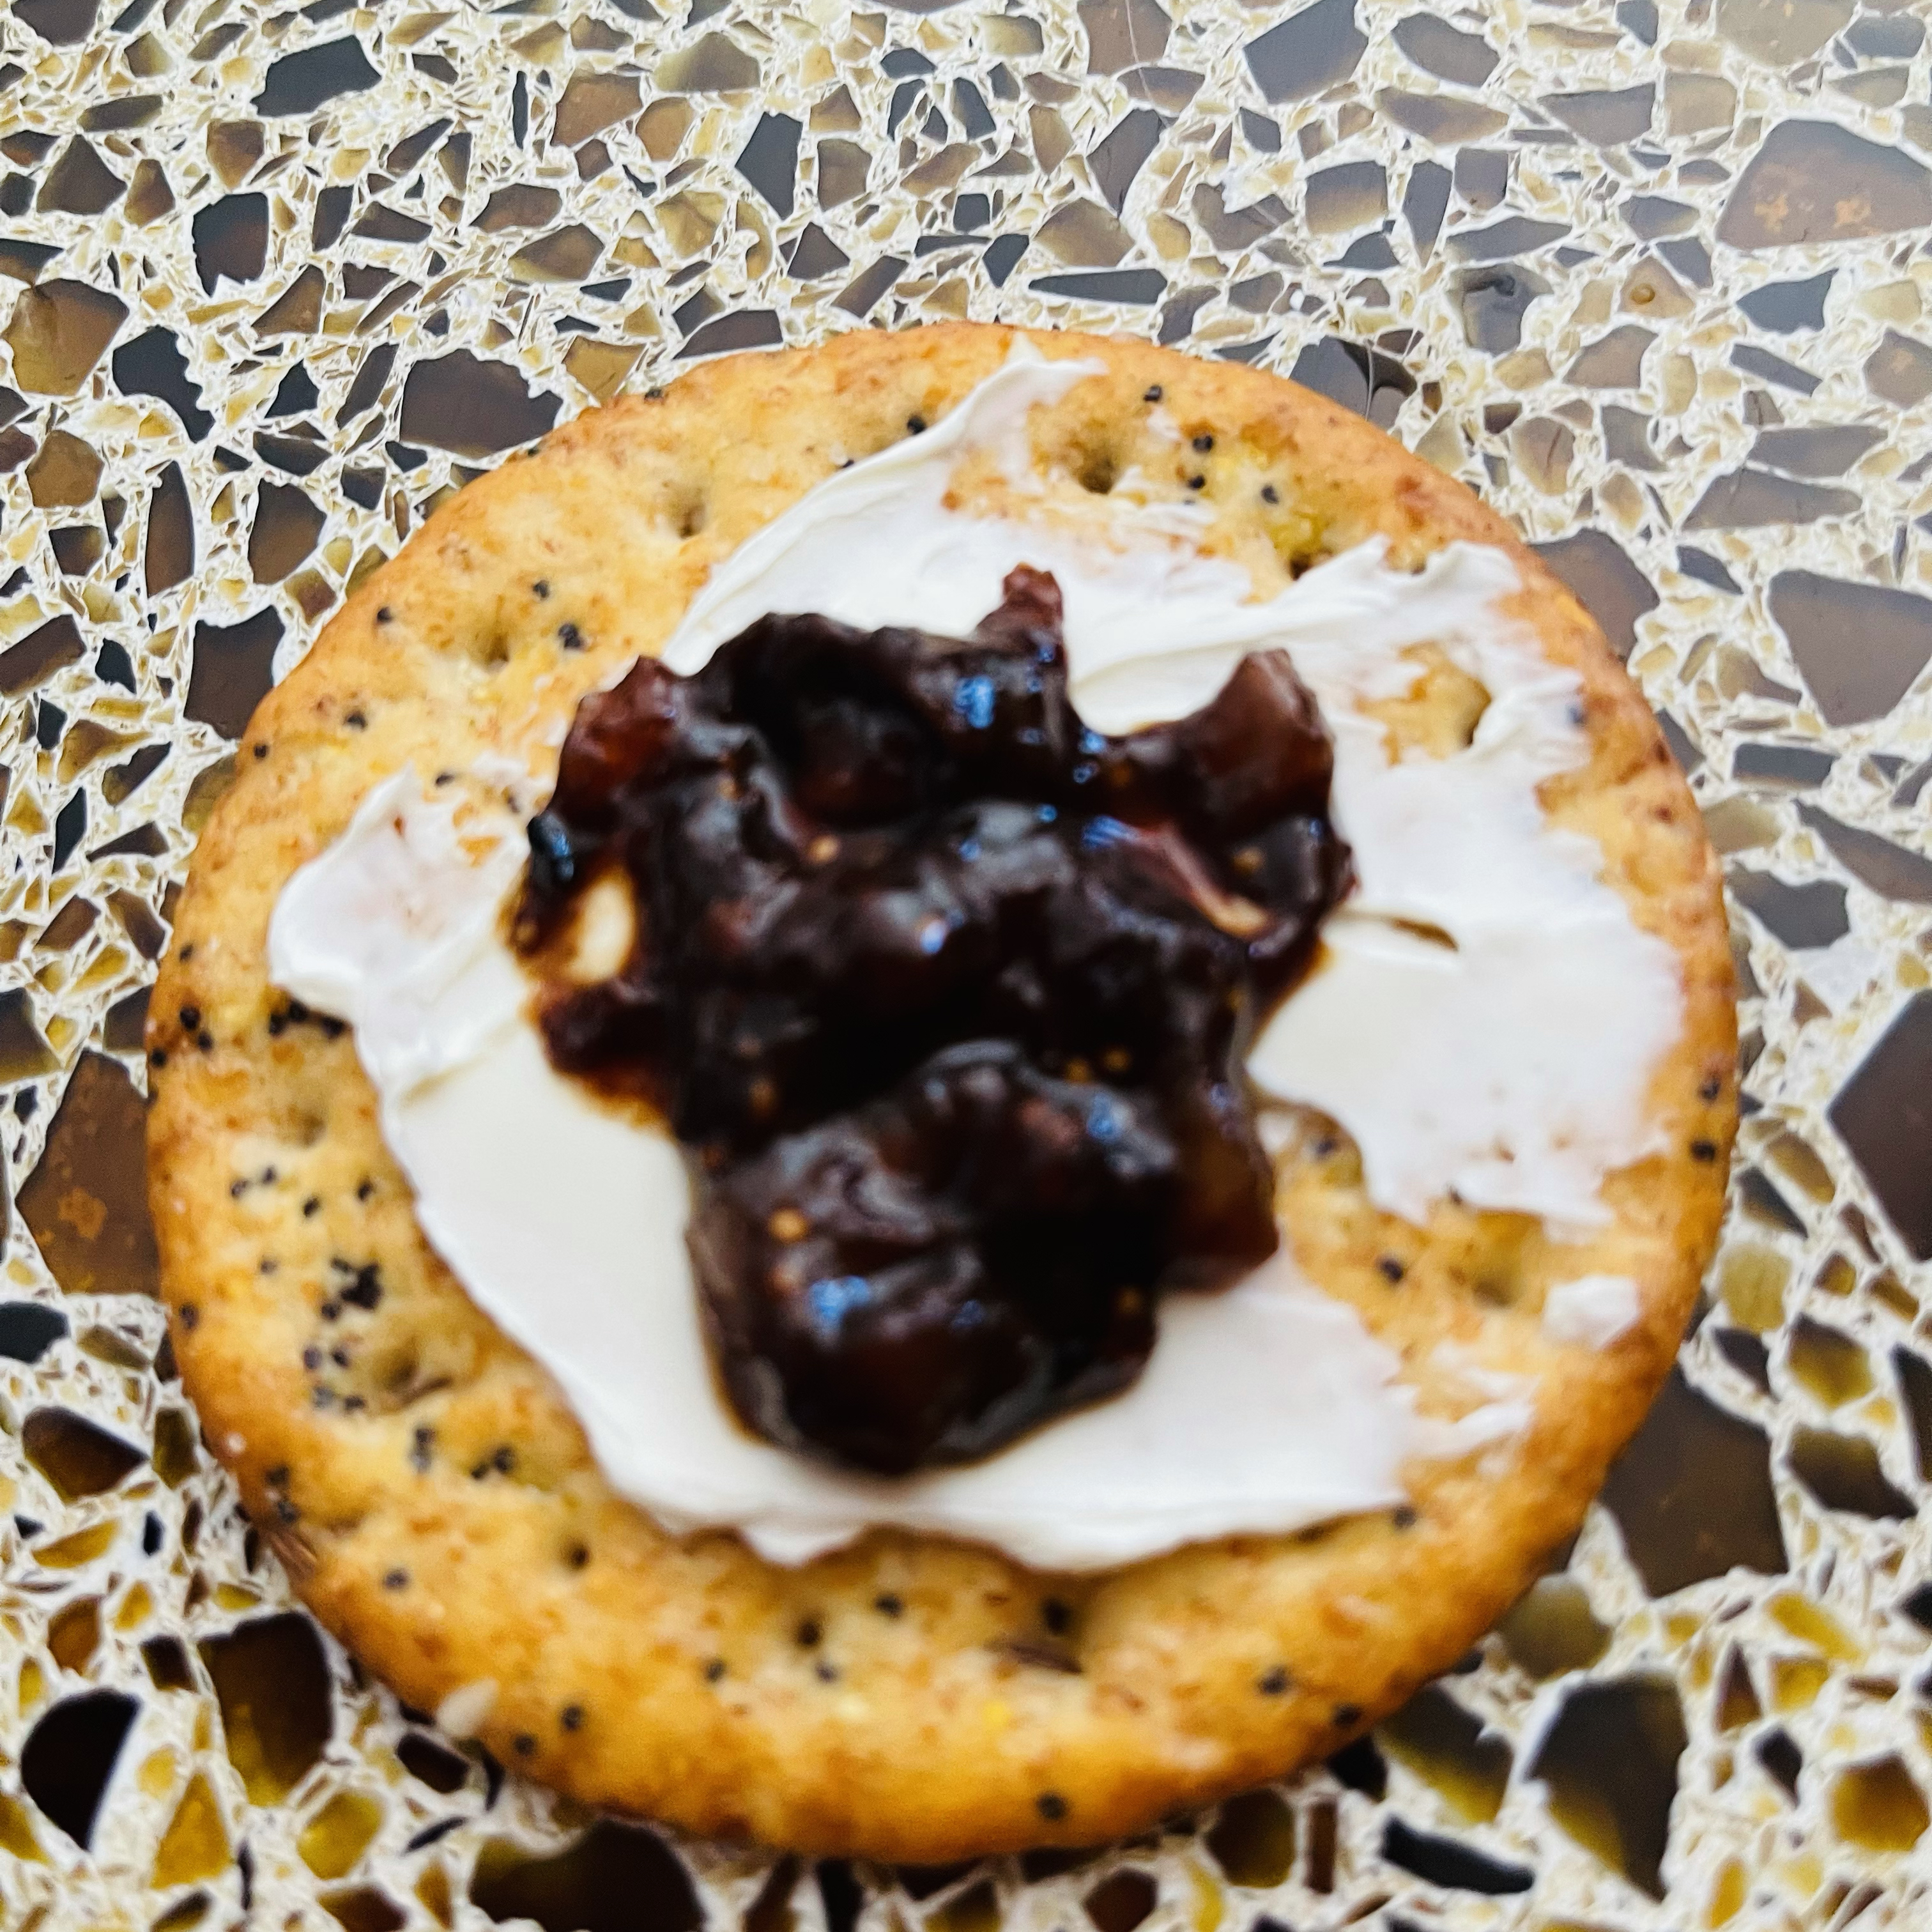 Fig and Onion Spread Chriscat